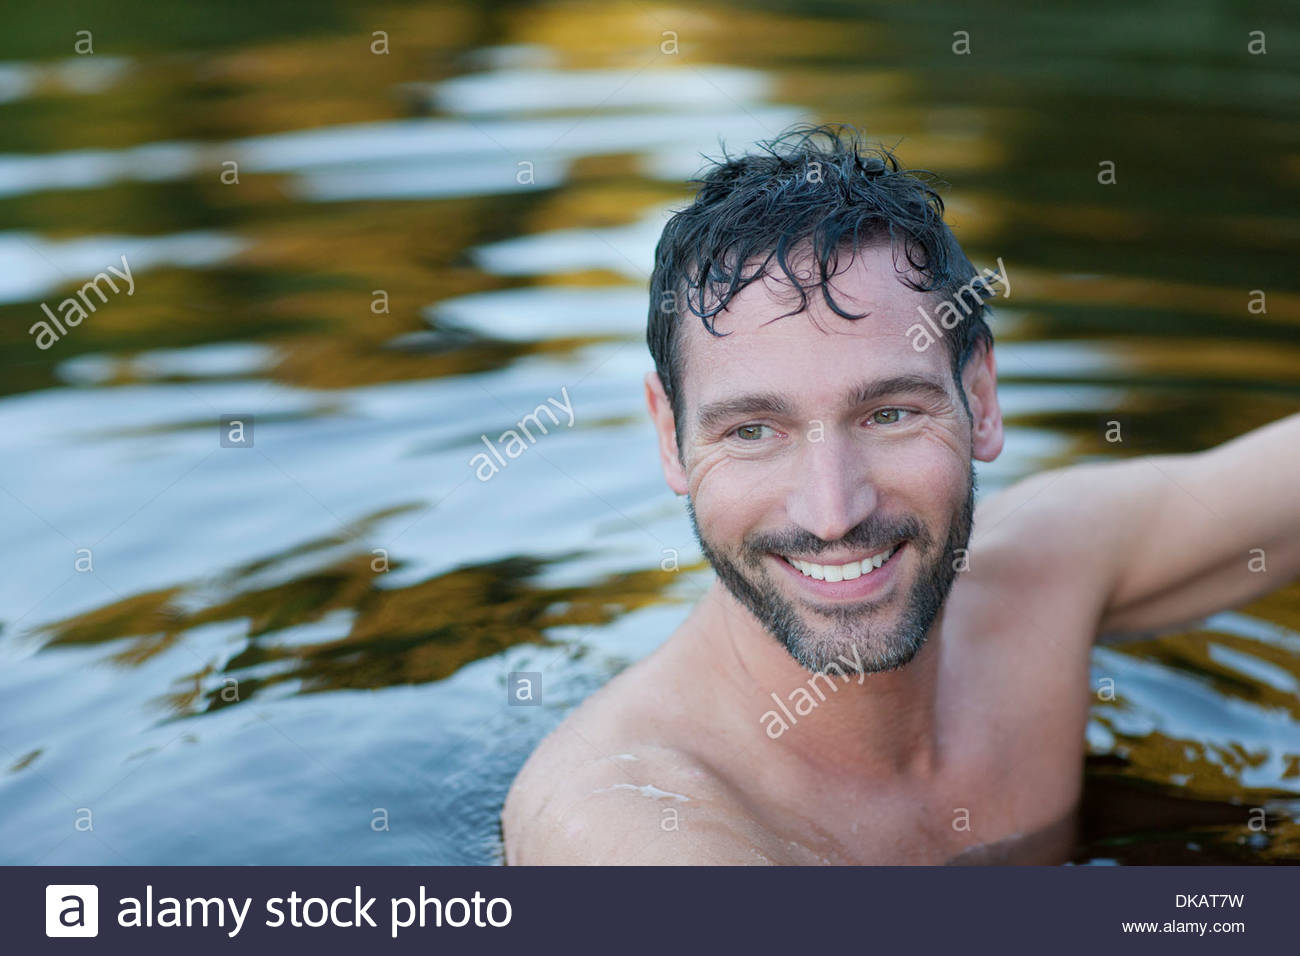 Portait of mature man in lake - Stock Image